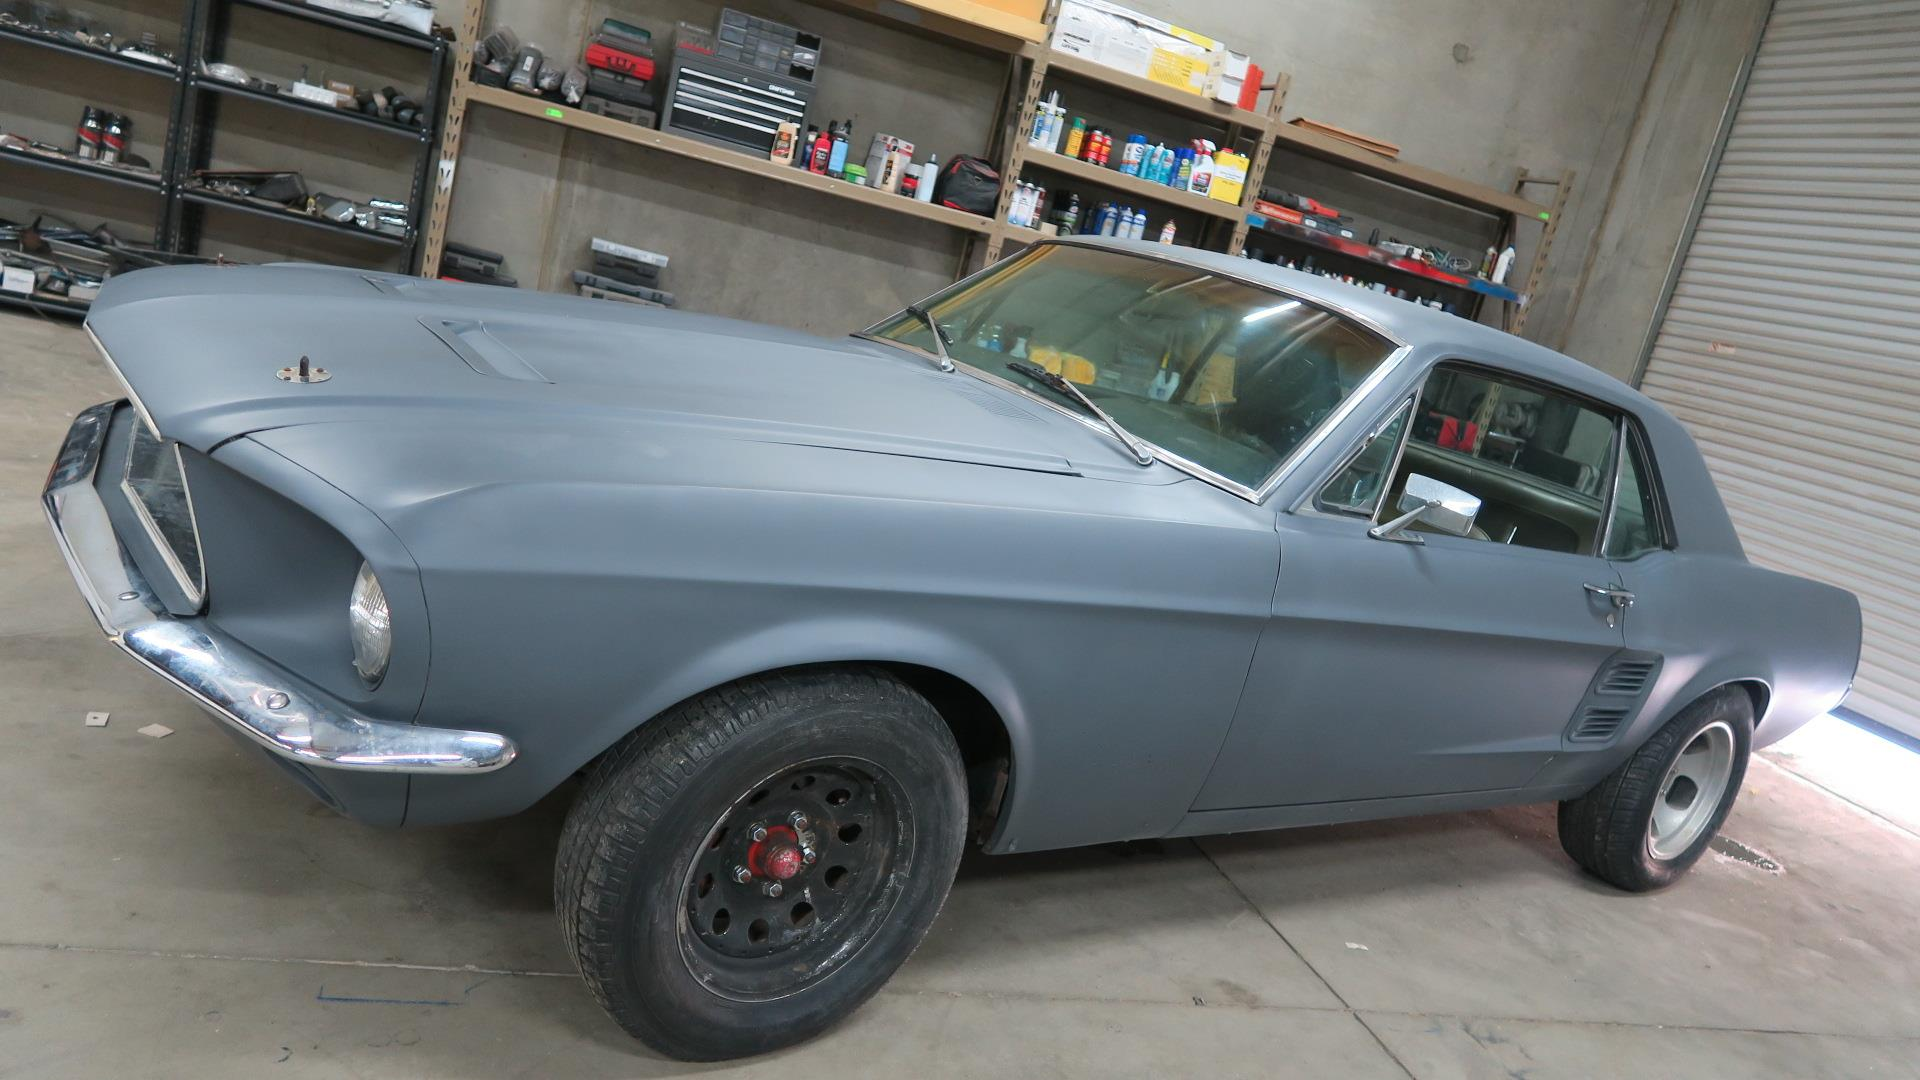 Details about 1967 Ford Mustang C CODE 302 V8! CALIFORNIA CAR! P/S! DISC  BRAKES!